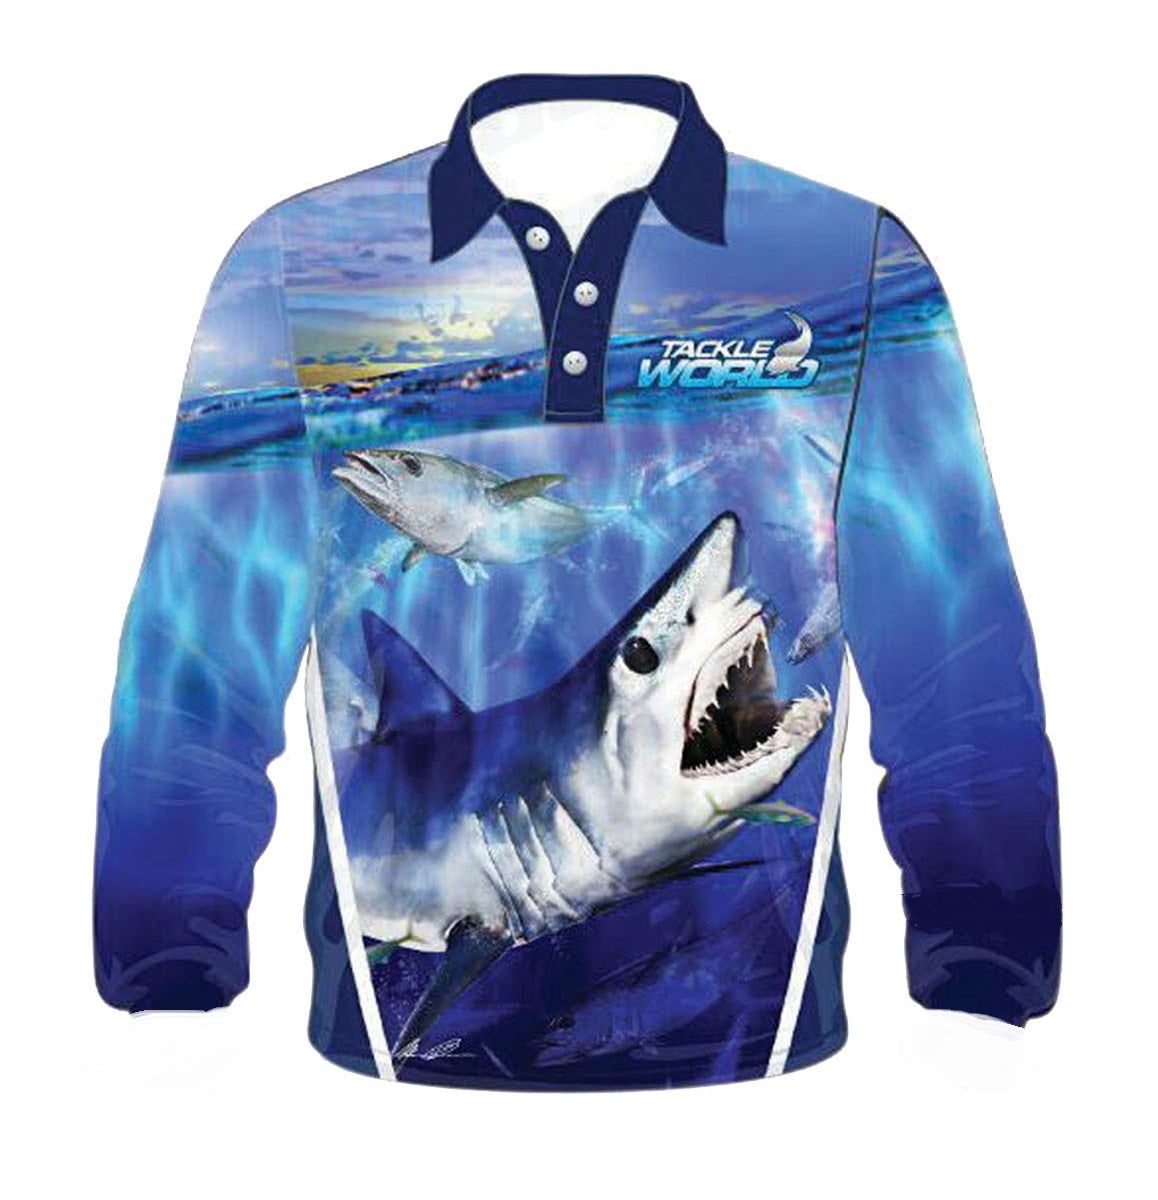 Tackle World Mako Shark Adult Long Sleeve Fishing Shirt